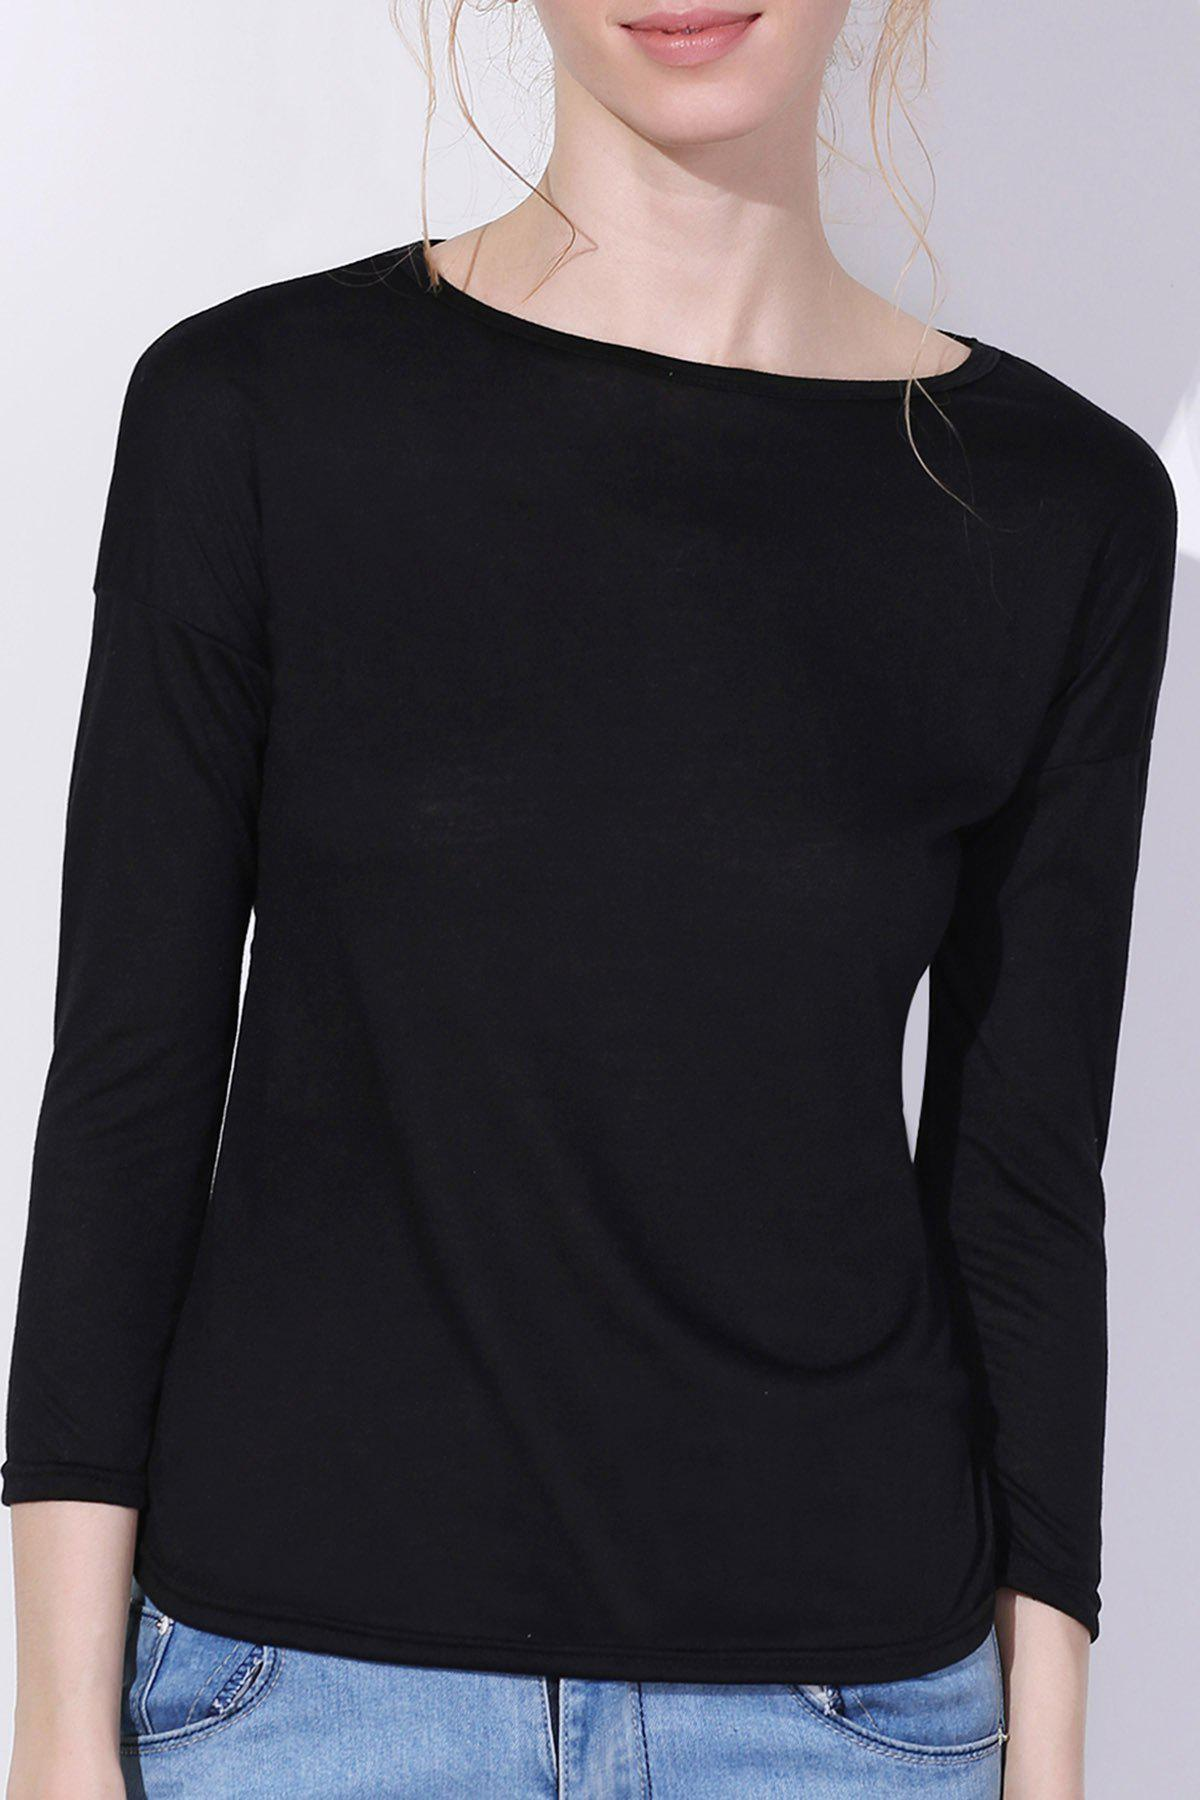 Charming Scoop Neck Solid Color 3/4 Sleeve T-Shirt For Women